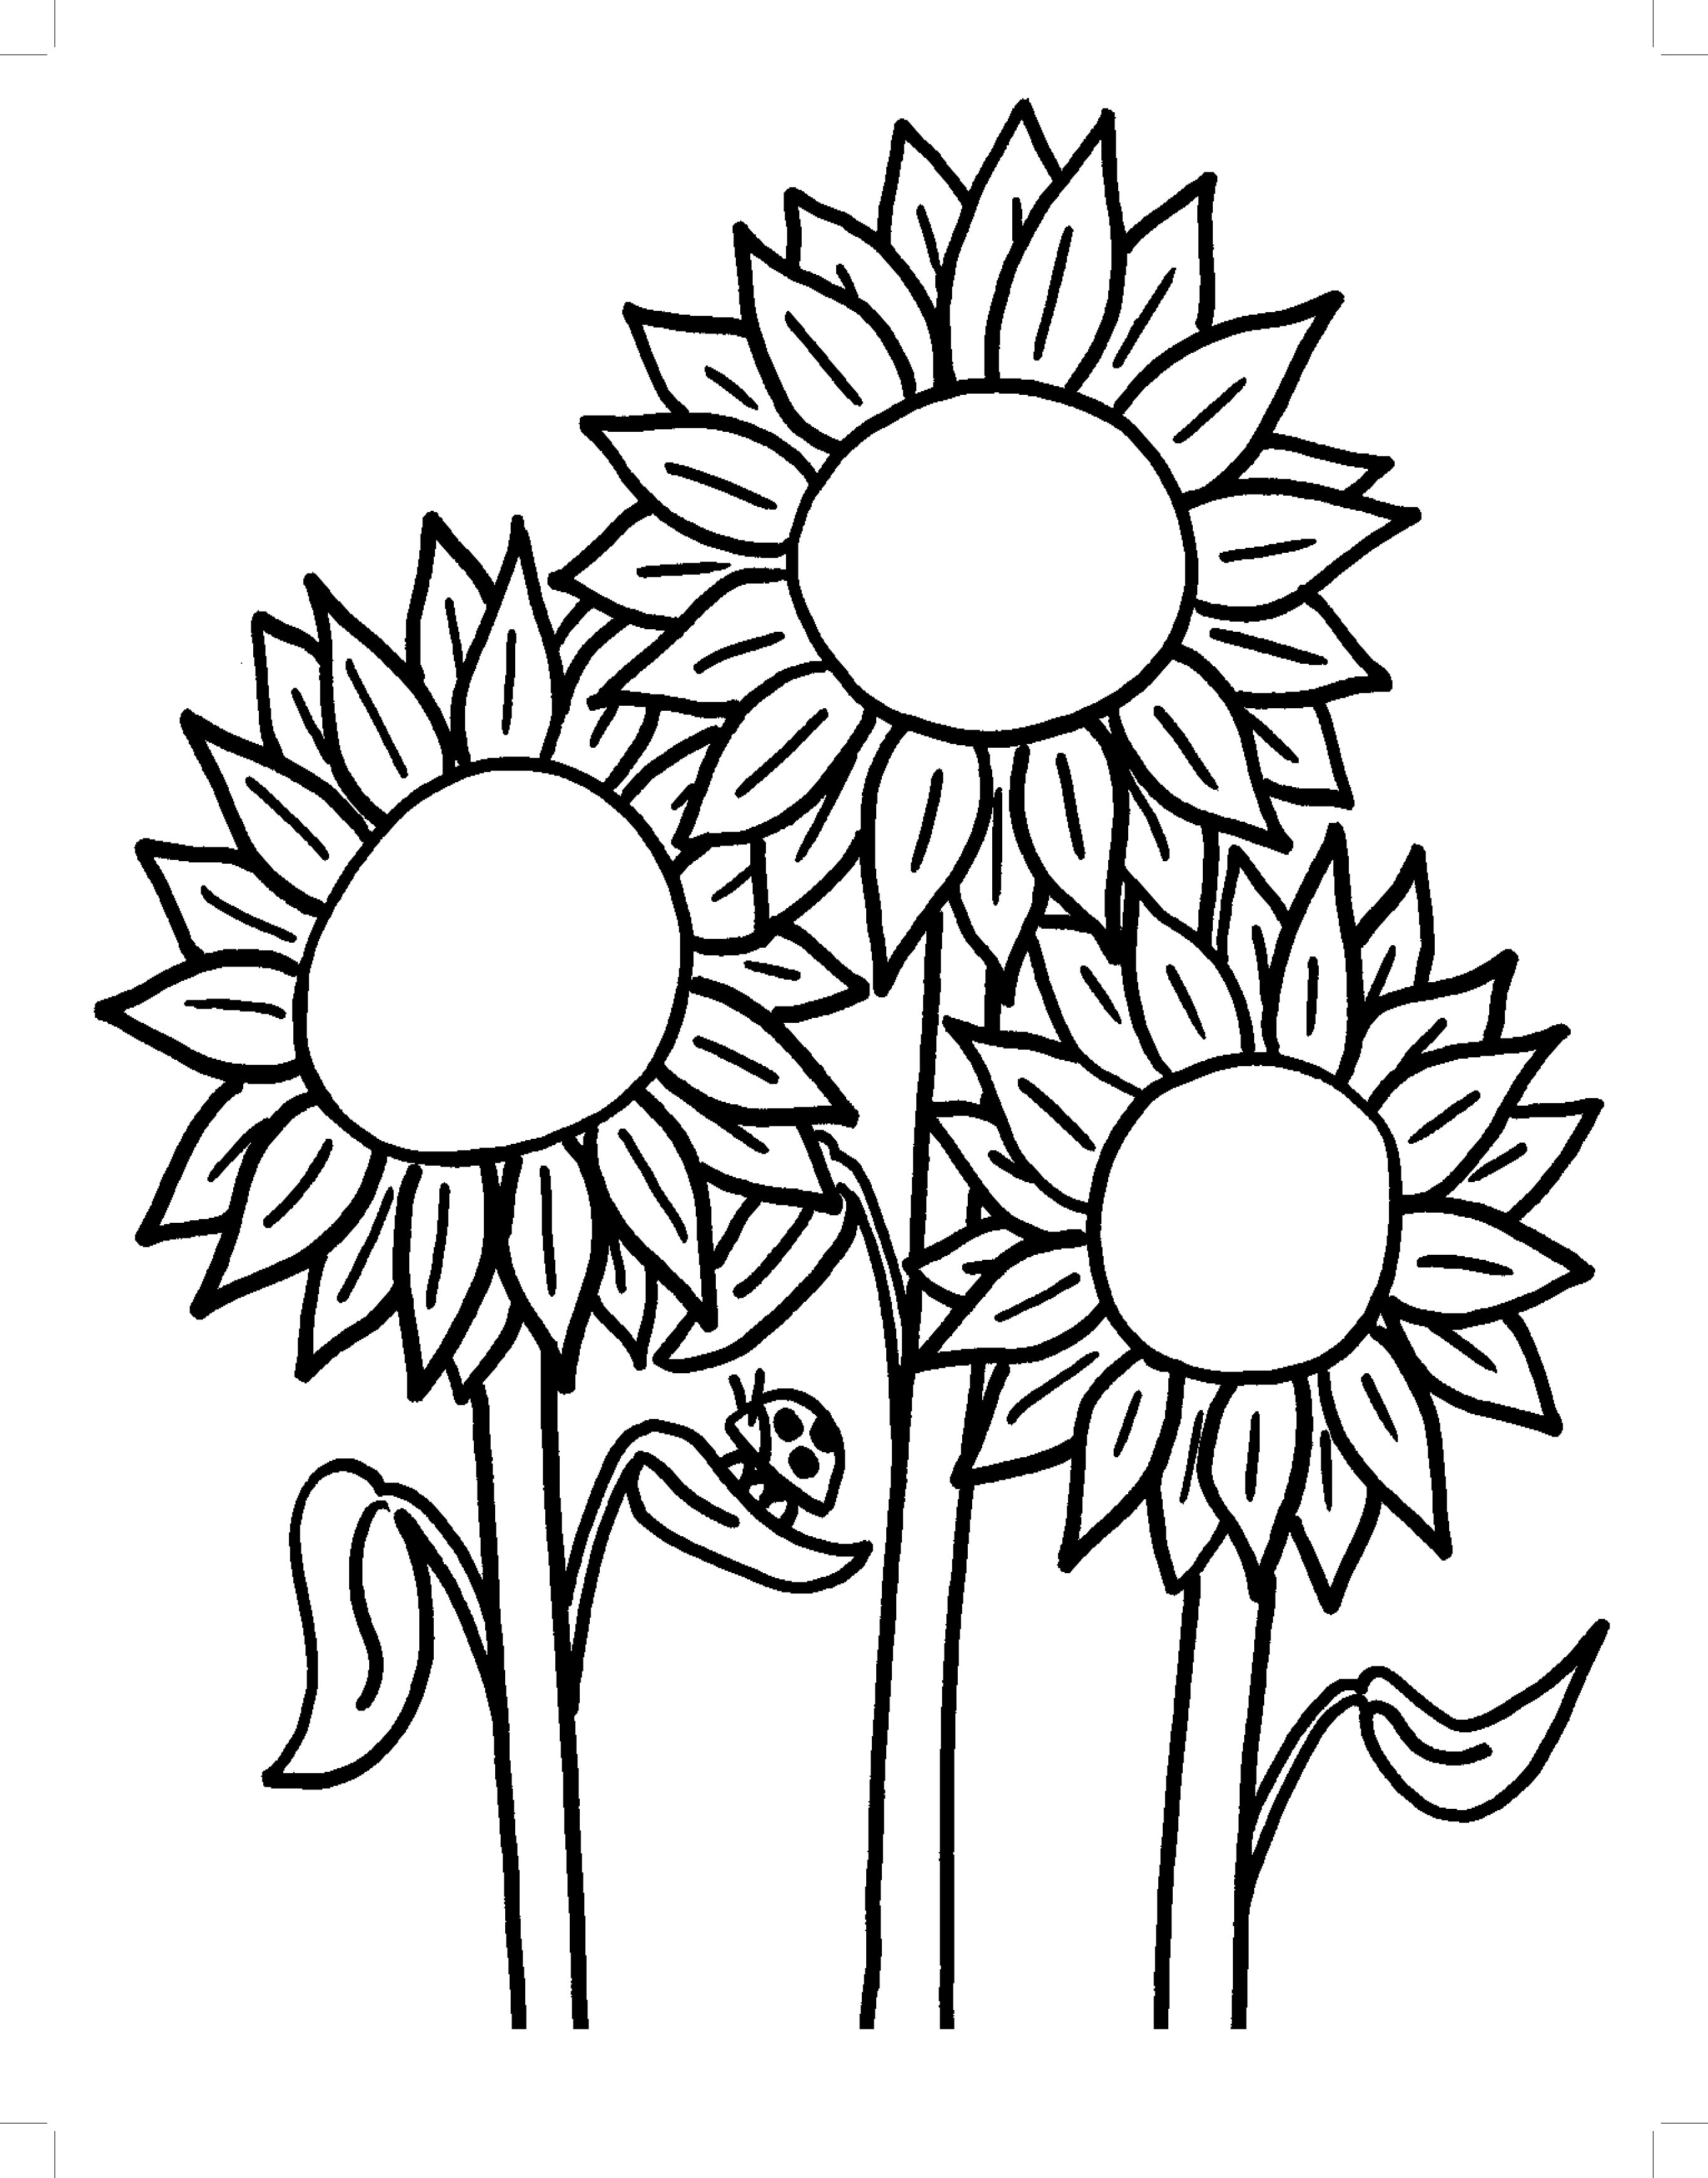 sunflower coloring pages to print coloring pages free sunflower coloring pages for kids to pages coloring print sunflower